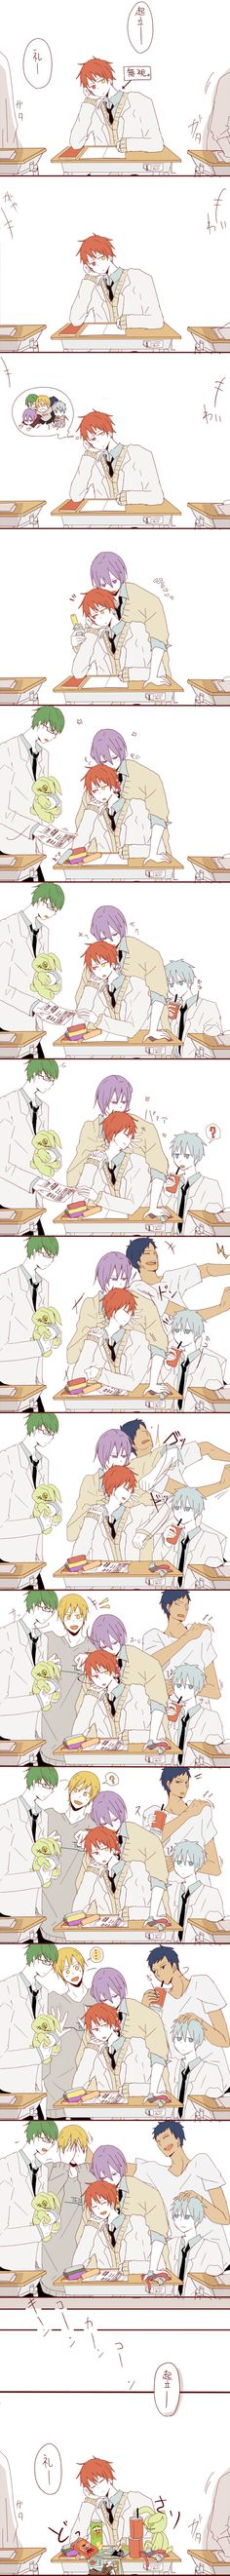 So cute, I love how they all appear one by one depositing things on his desk after he thinks about them | Akashi is loved :) | KnS | Teiko | KnB